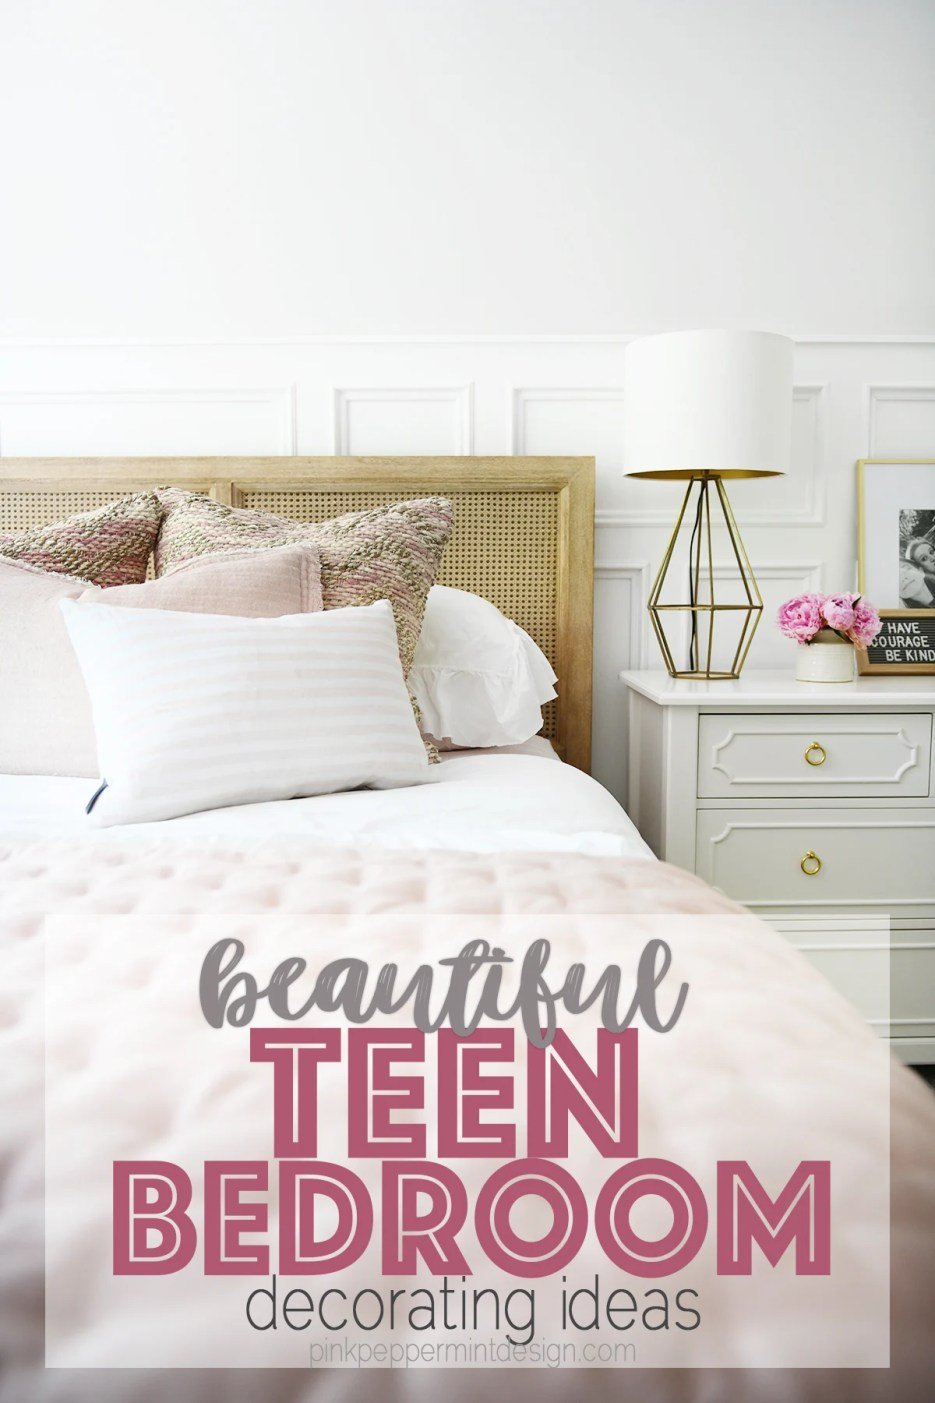 Cute Room Ideas For A Teenage Girl Teen Bedroom Before And